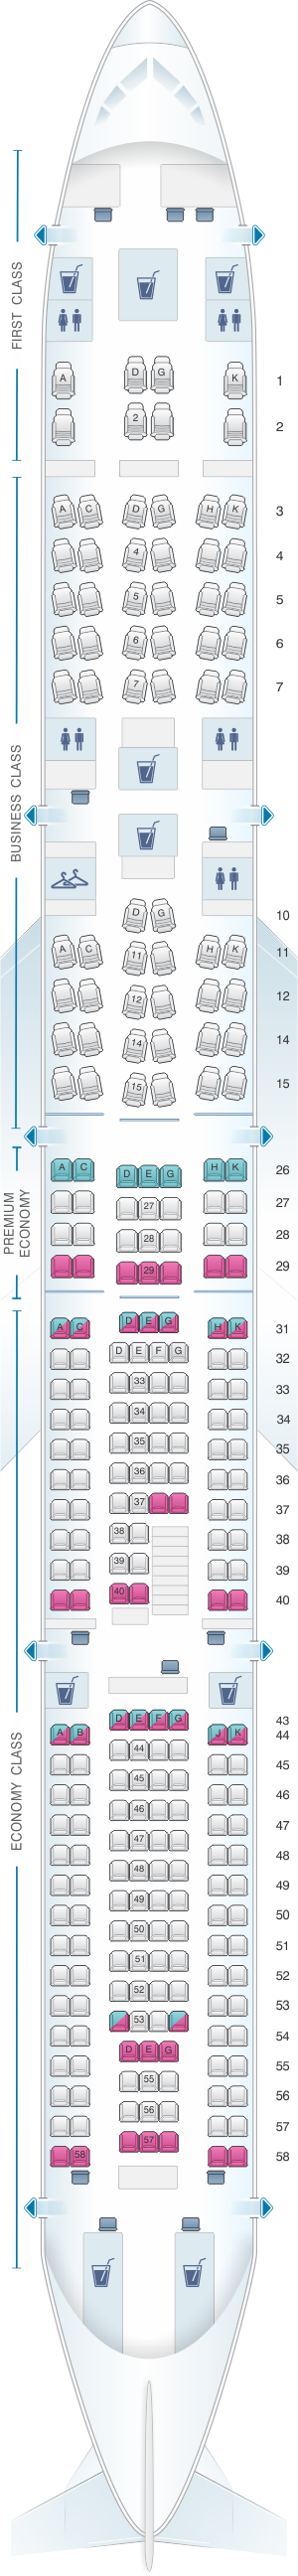 Seat map for Lufthansa Airbus A340 600 281pax